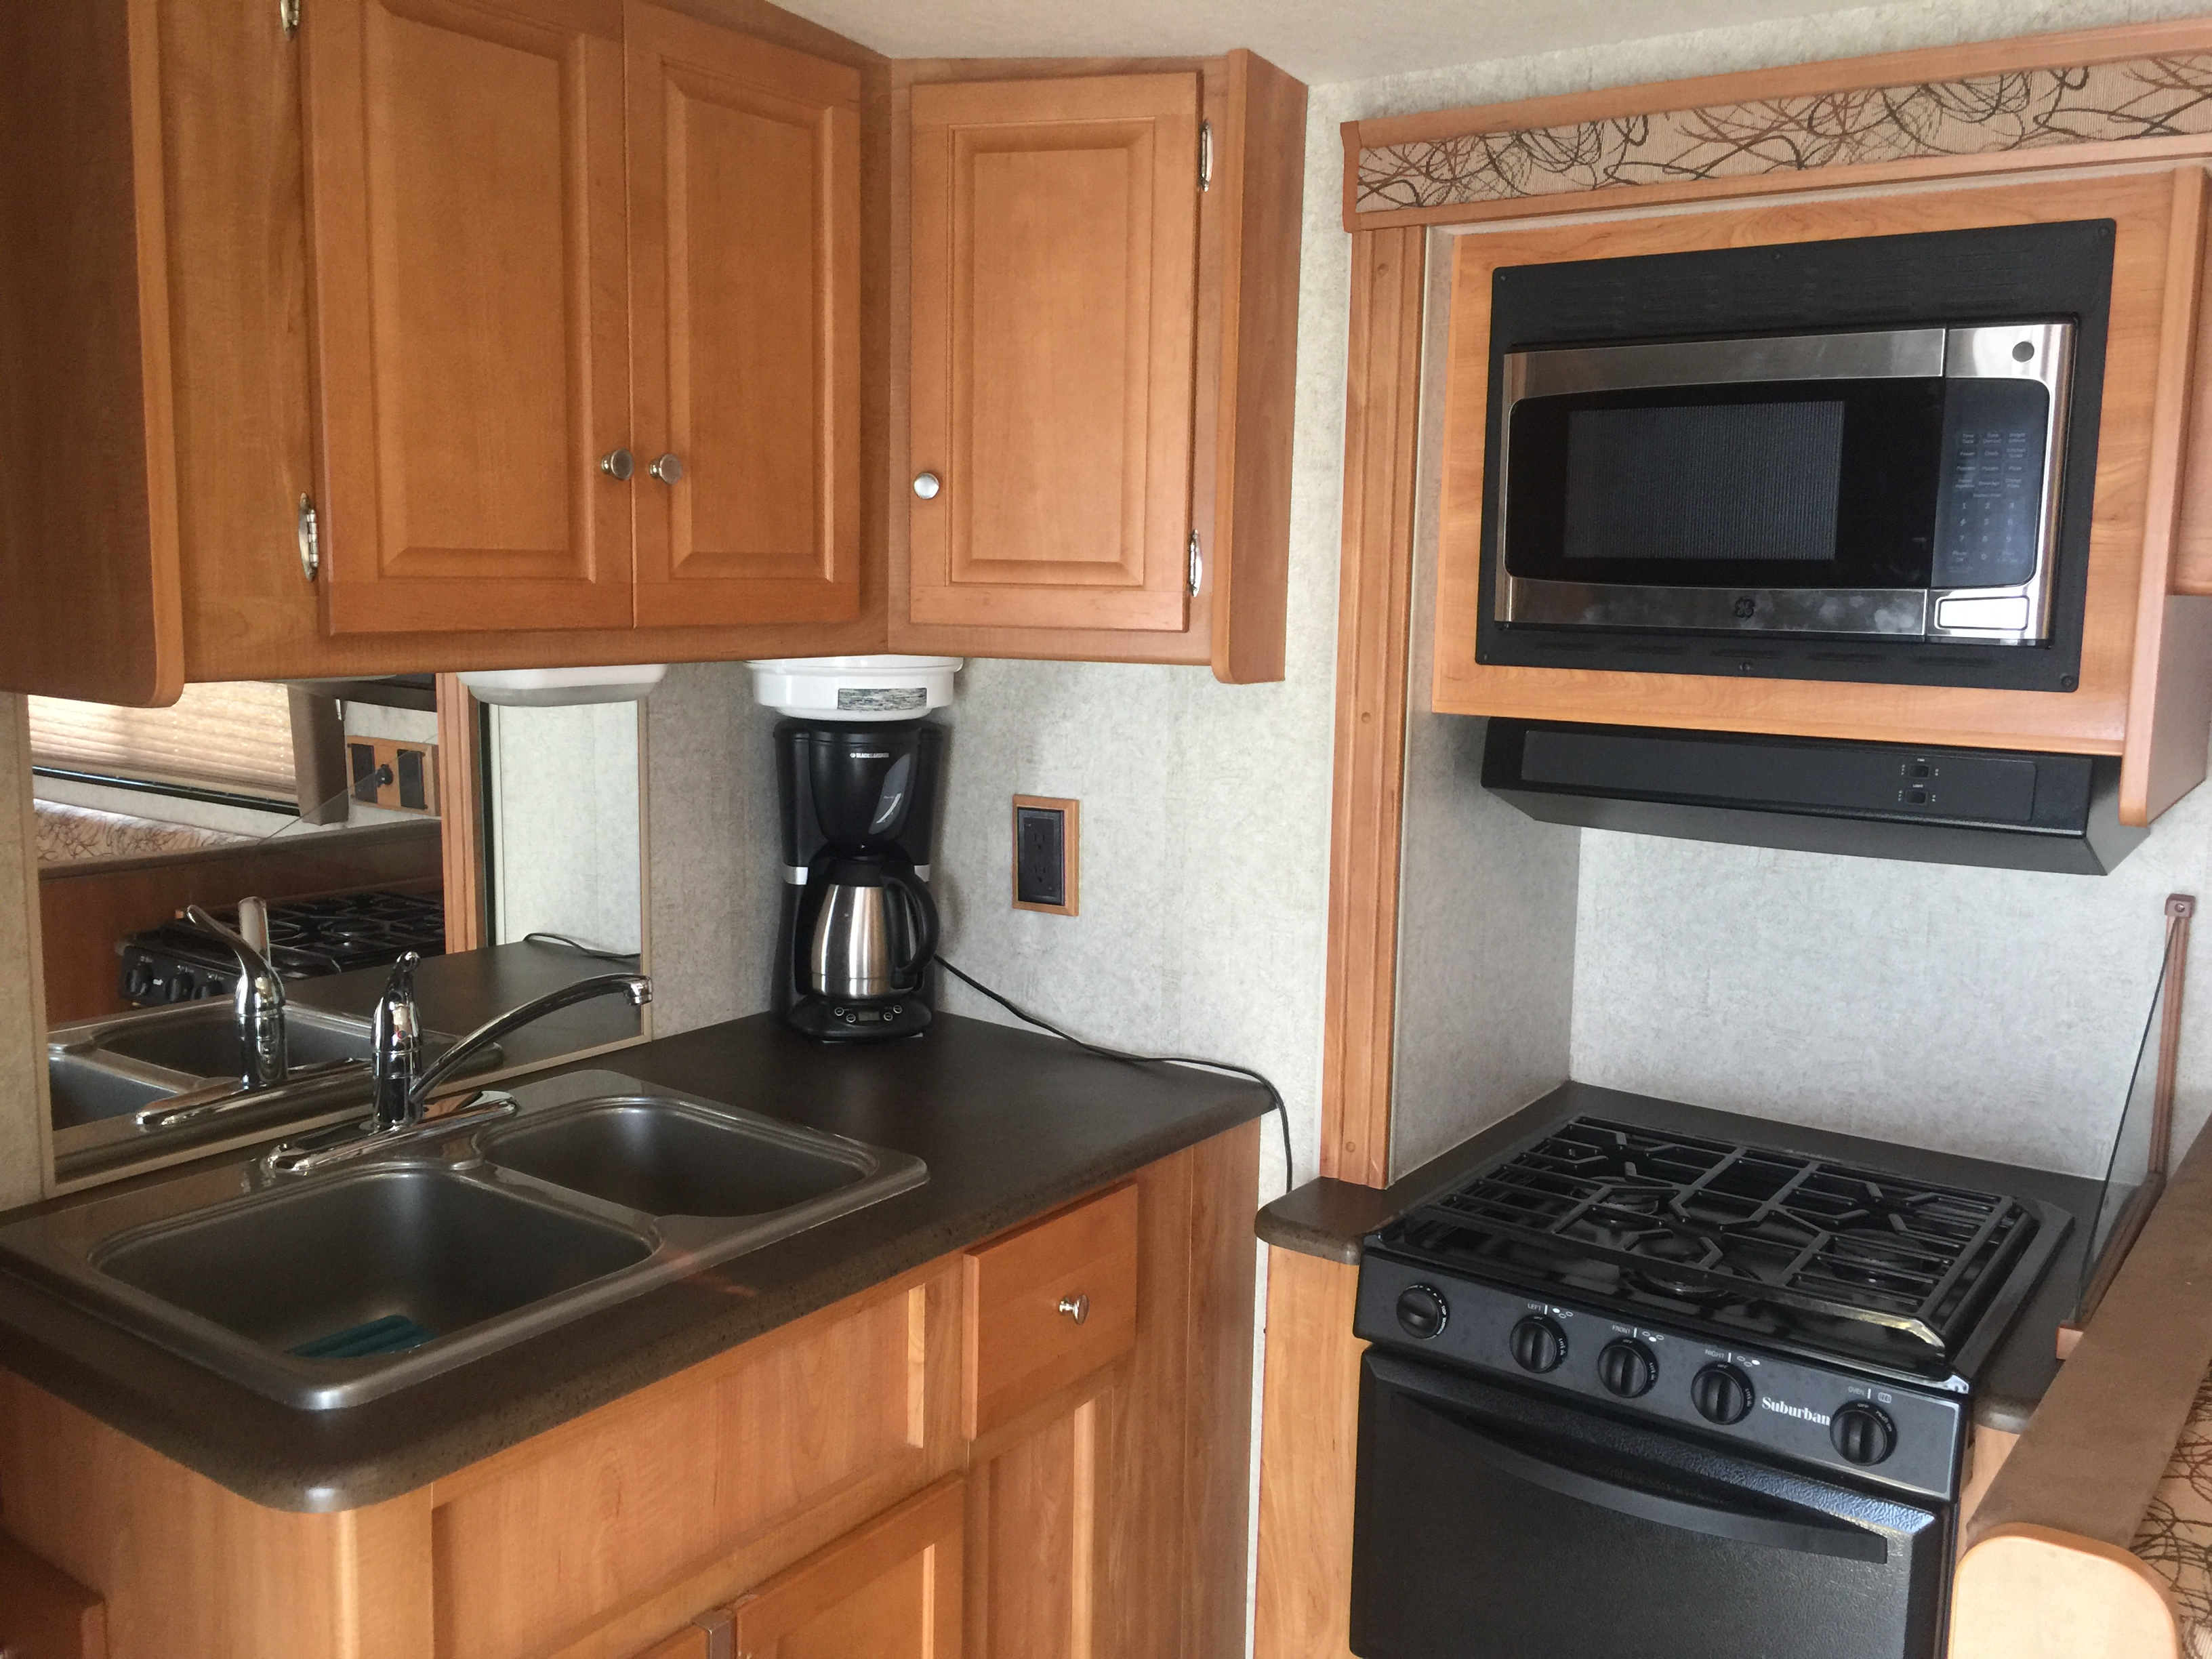 Kitchen area has dual sink, microwave, oven, stove, coffee maker, toaster and more. Fridge and separate freezer have more space than most RVs offer. Like having ice cream and kids like popsicles? Buy them both! There's room!. Winnebago Vista 2008